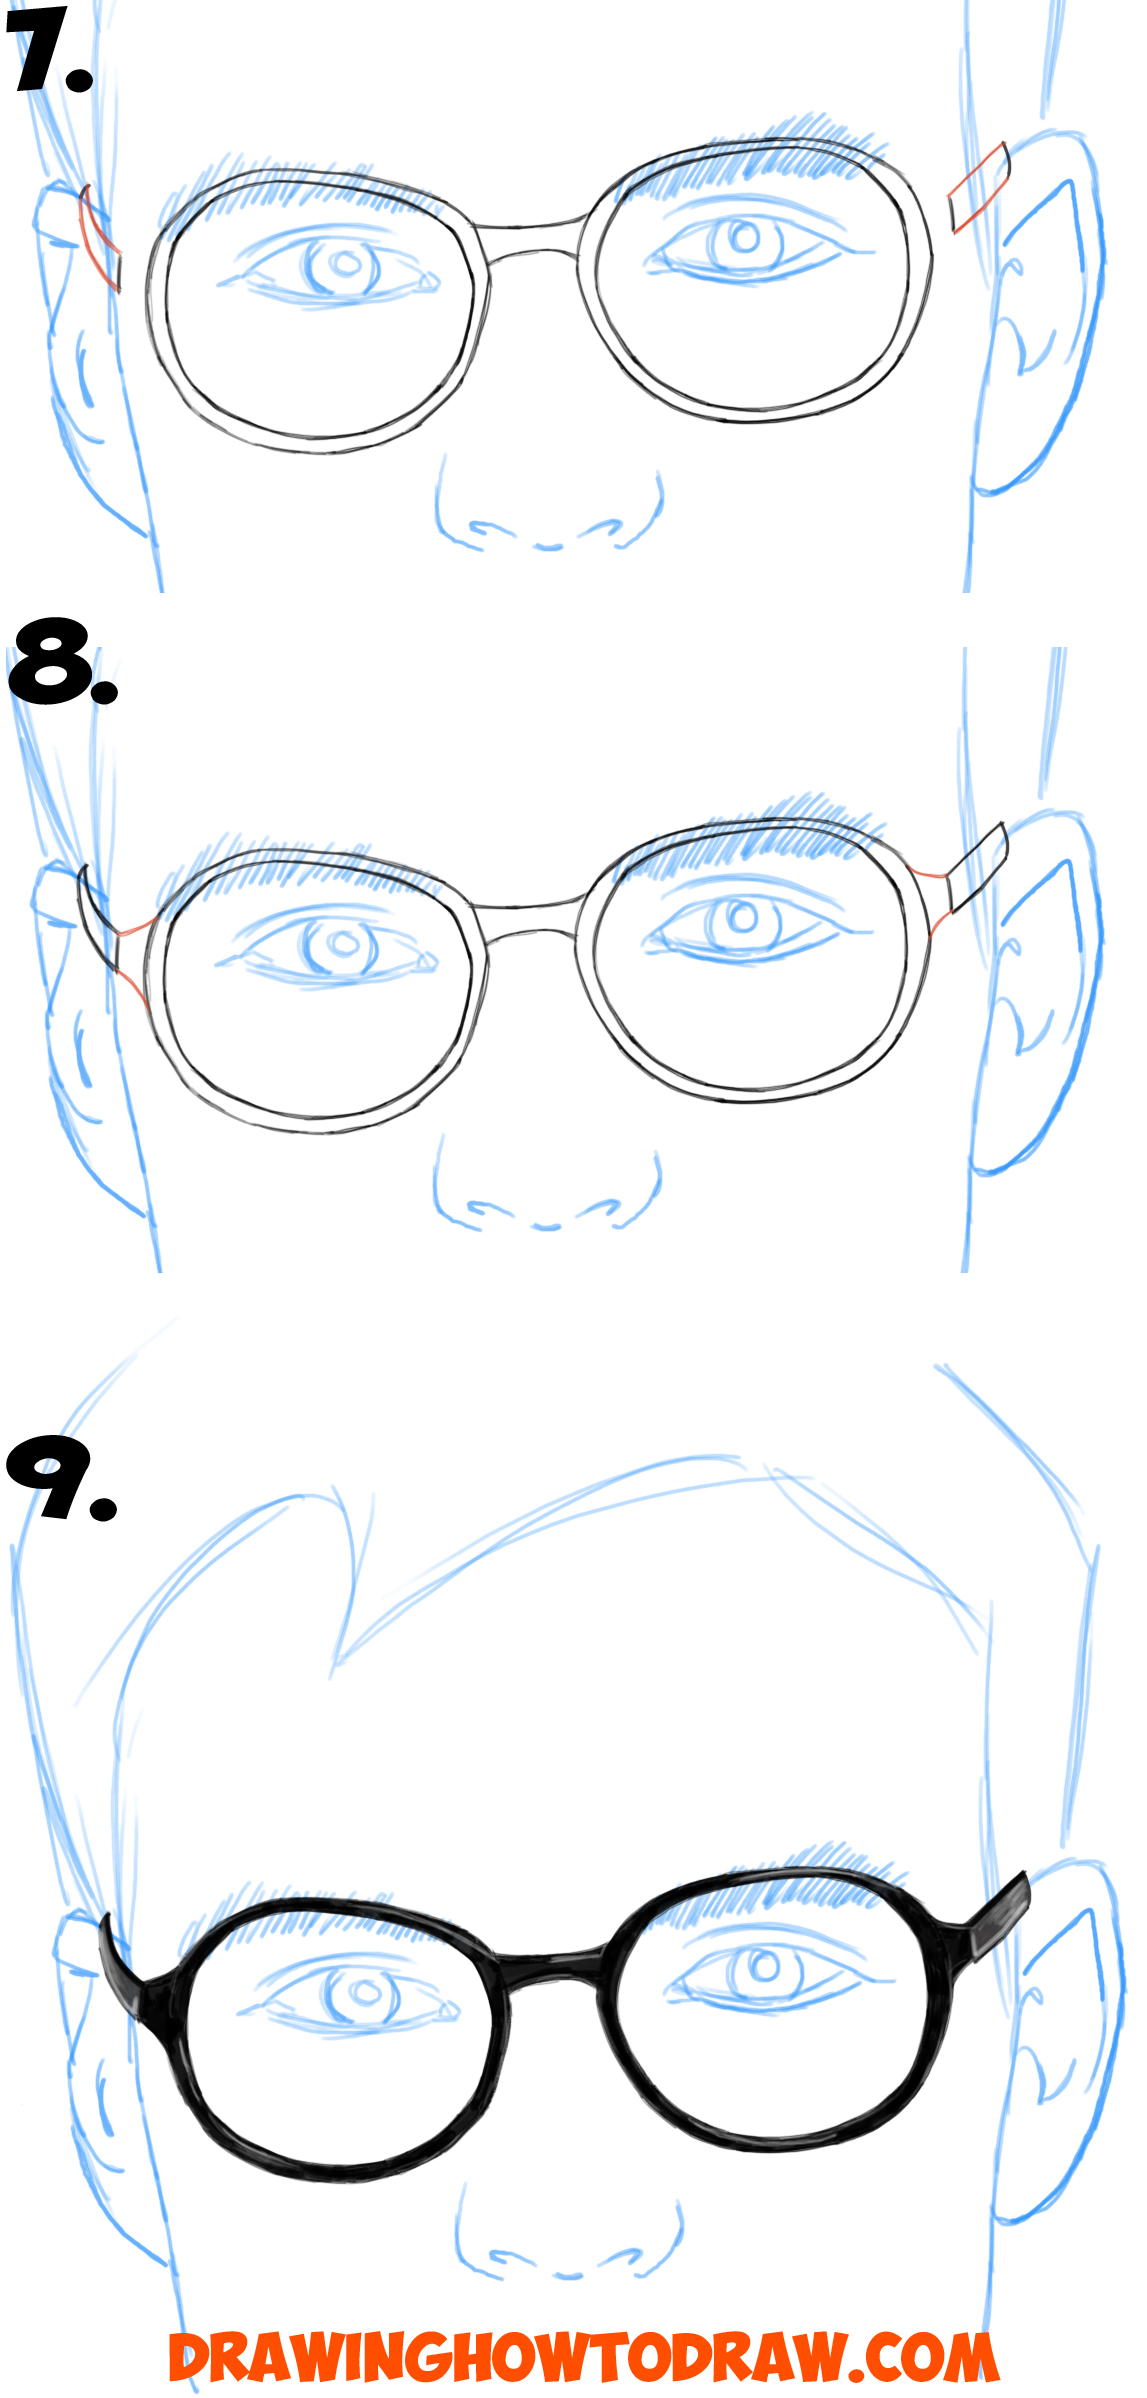 1147x2398 How To Draw Glasses On A Person's Face From All Angles (Side